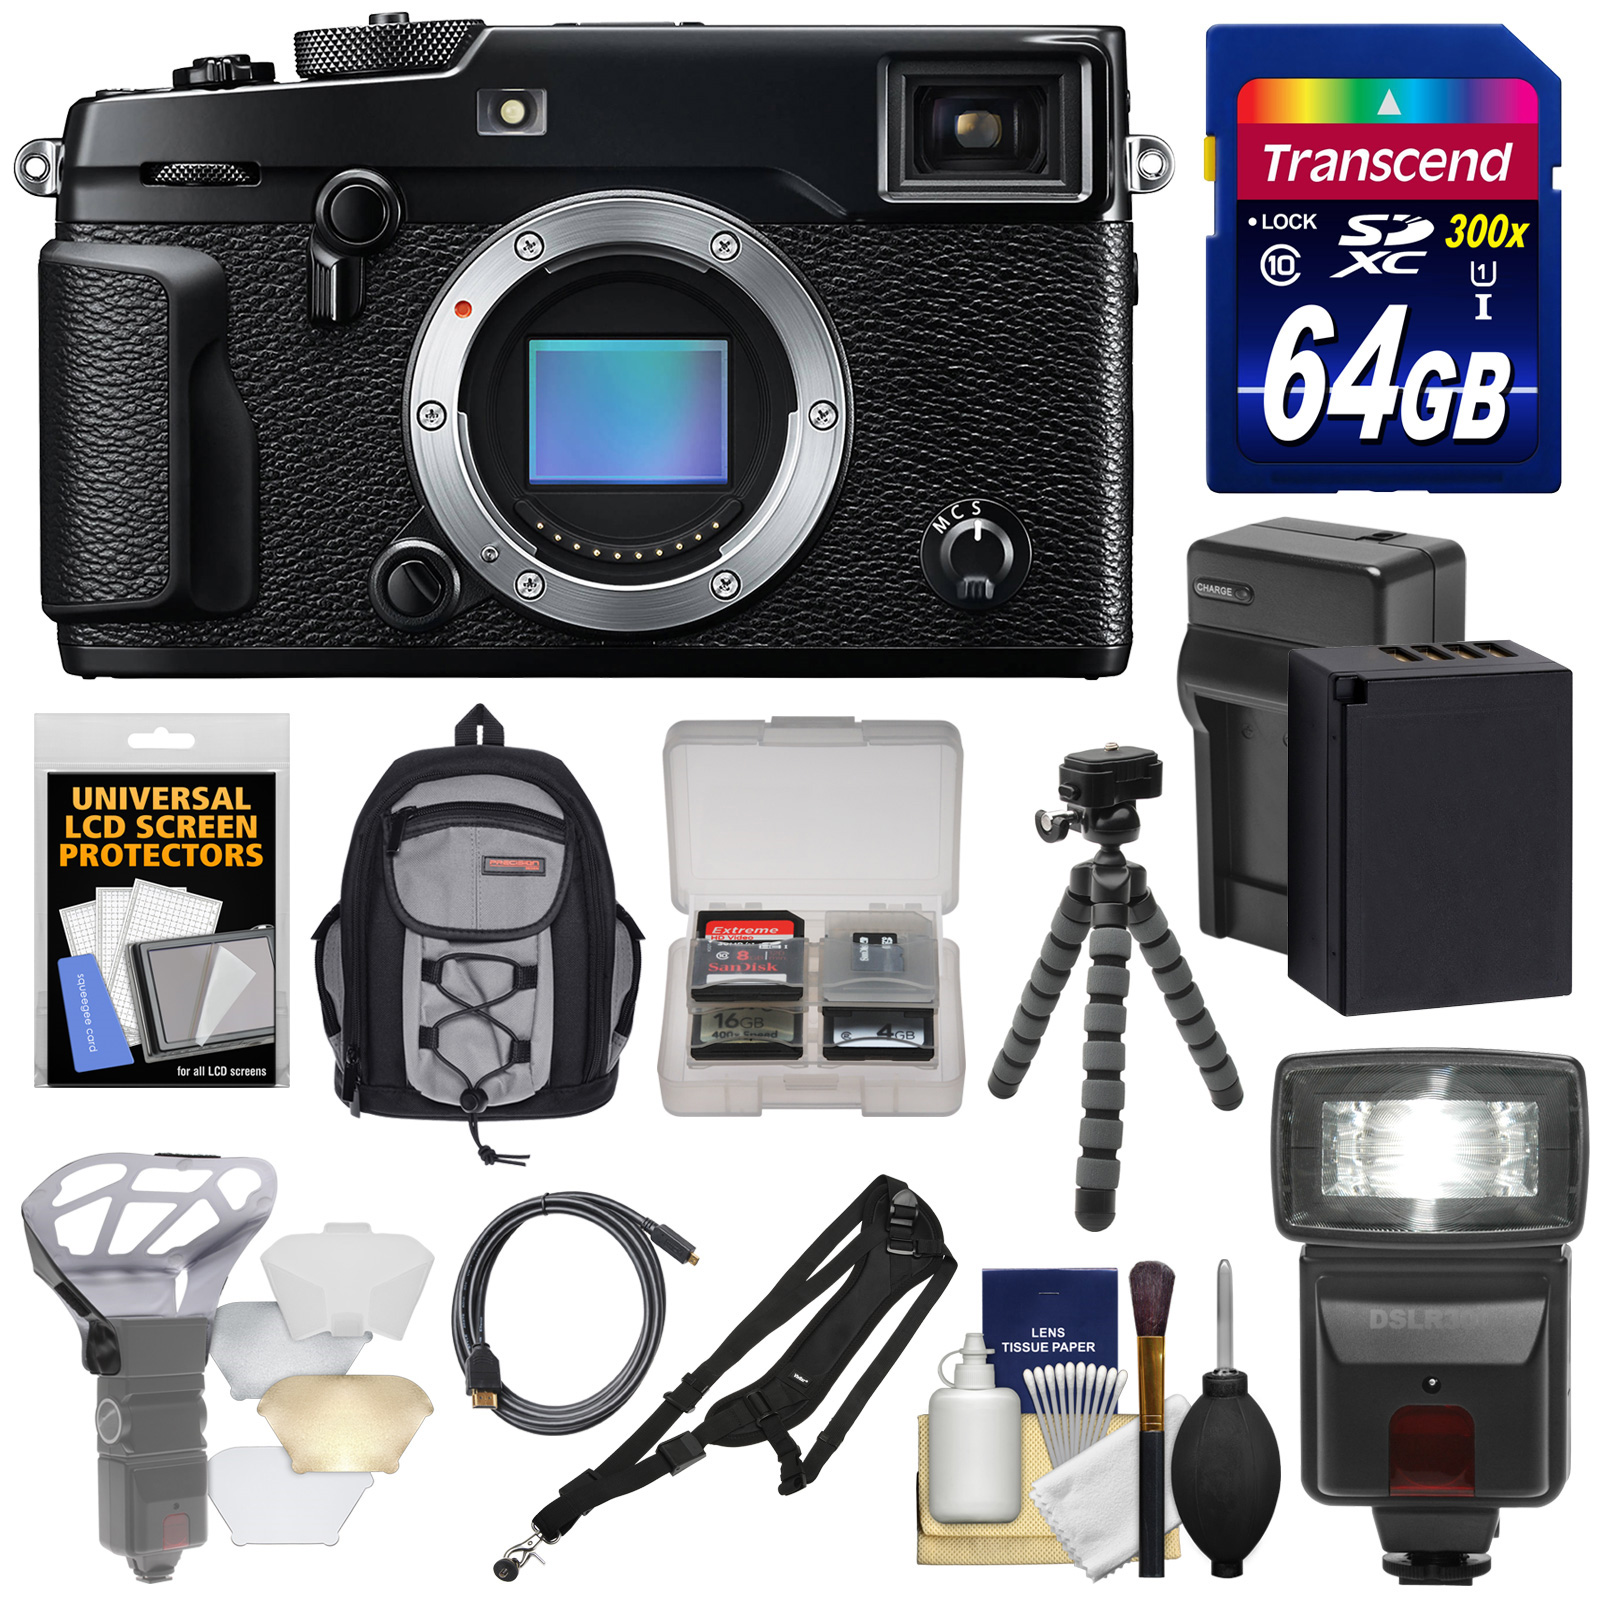 Fujifilm X-Pro2 Wi-Fi Digital Camera Body with 64GB Card + Battery & Charger + Flash + Sling Backpack + Tripod + Strap + Kit